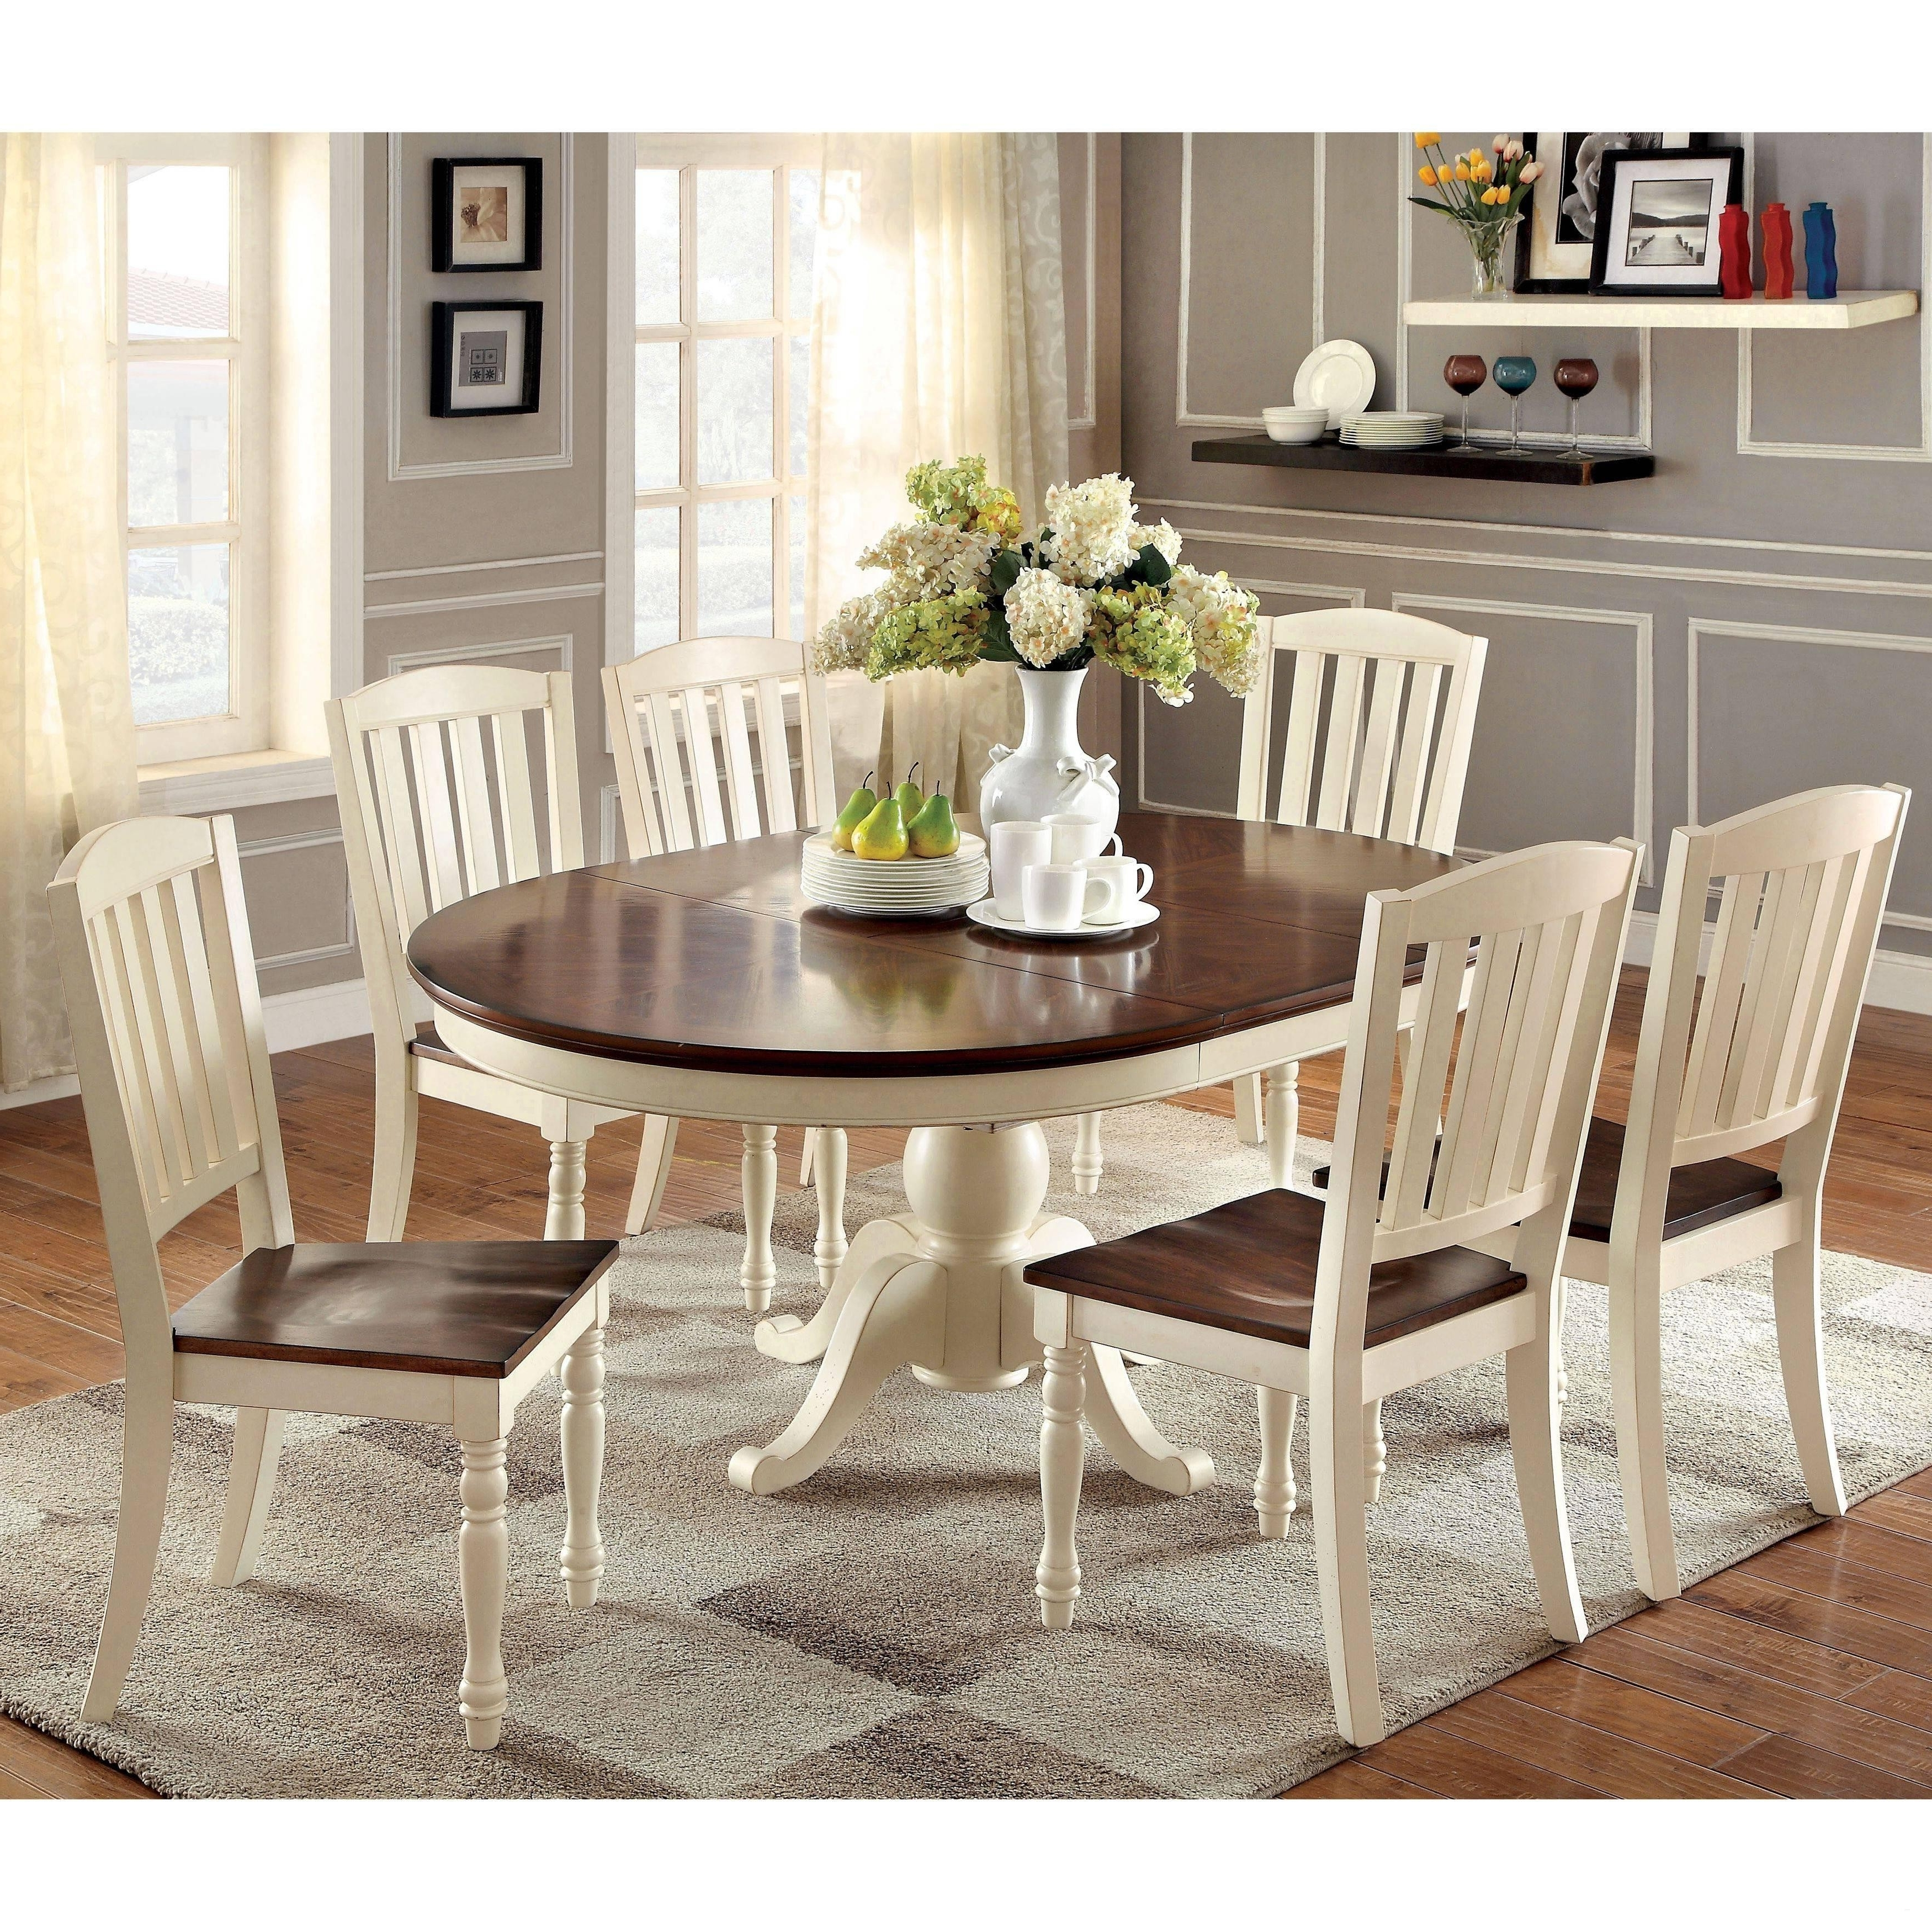 Famous Kitchen Dining Sets Regarding Round Dining Table For 10 Inspirational 42 Inspirational White Round (View 7 of 25)